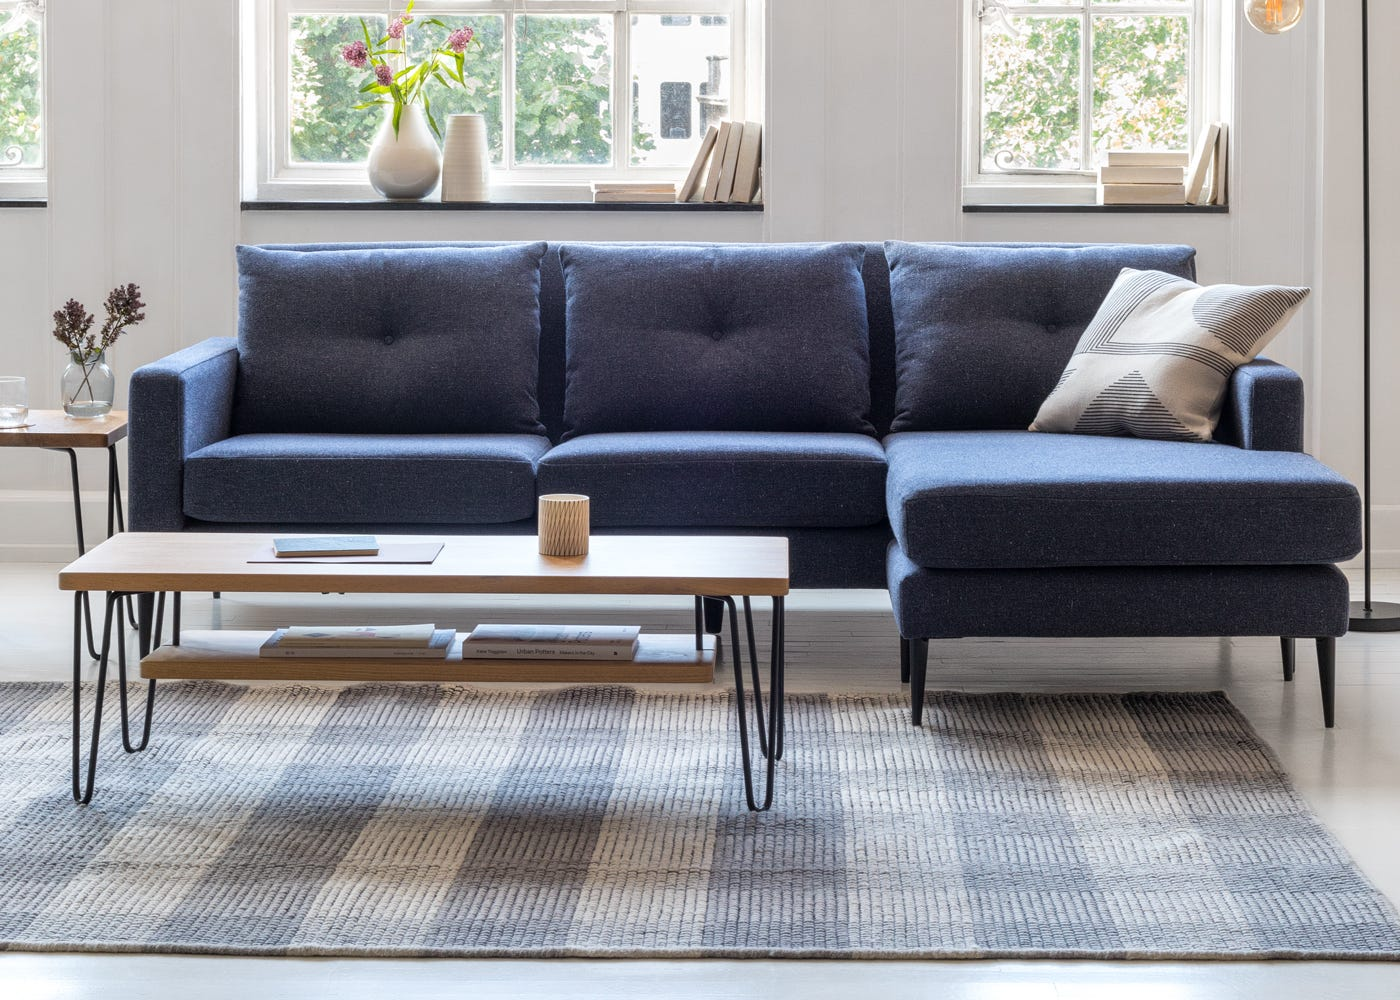 Brunel Shelf For Coffee Table - Lounge View